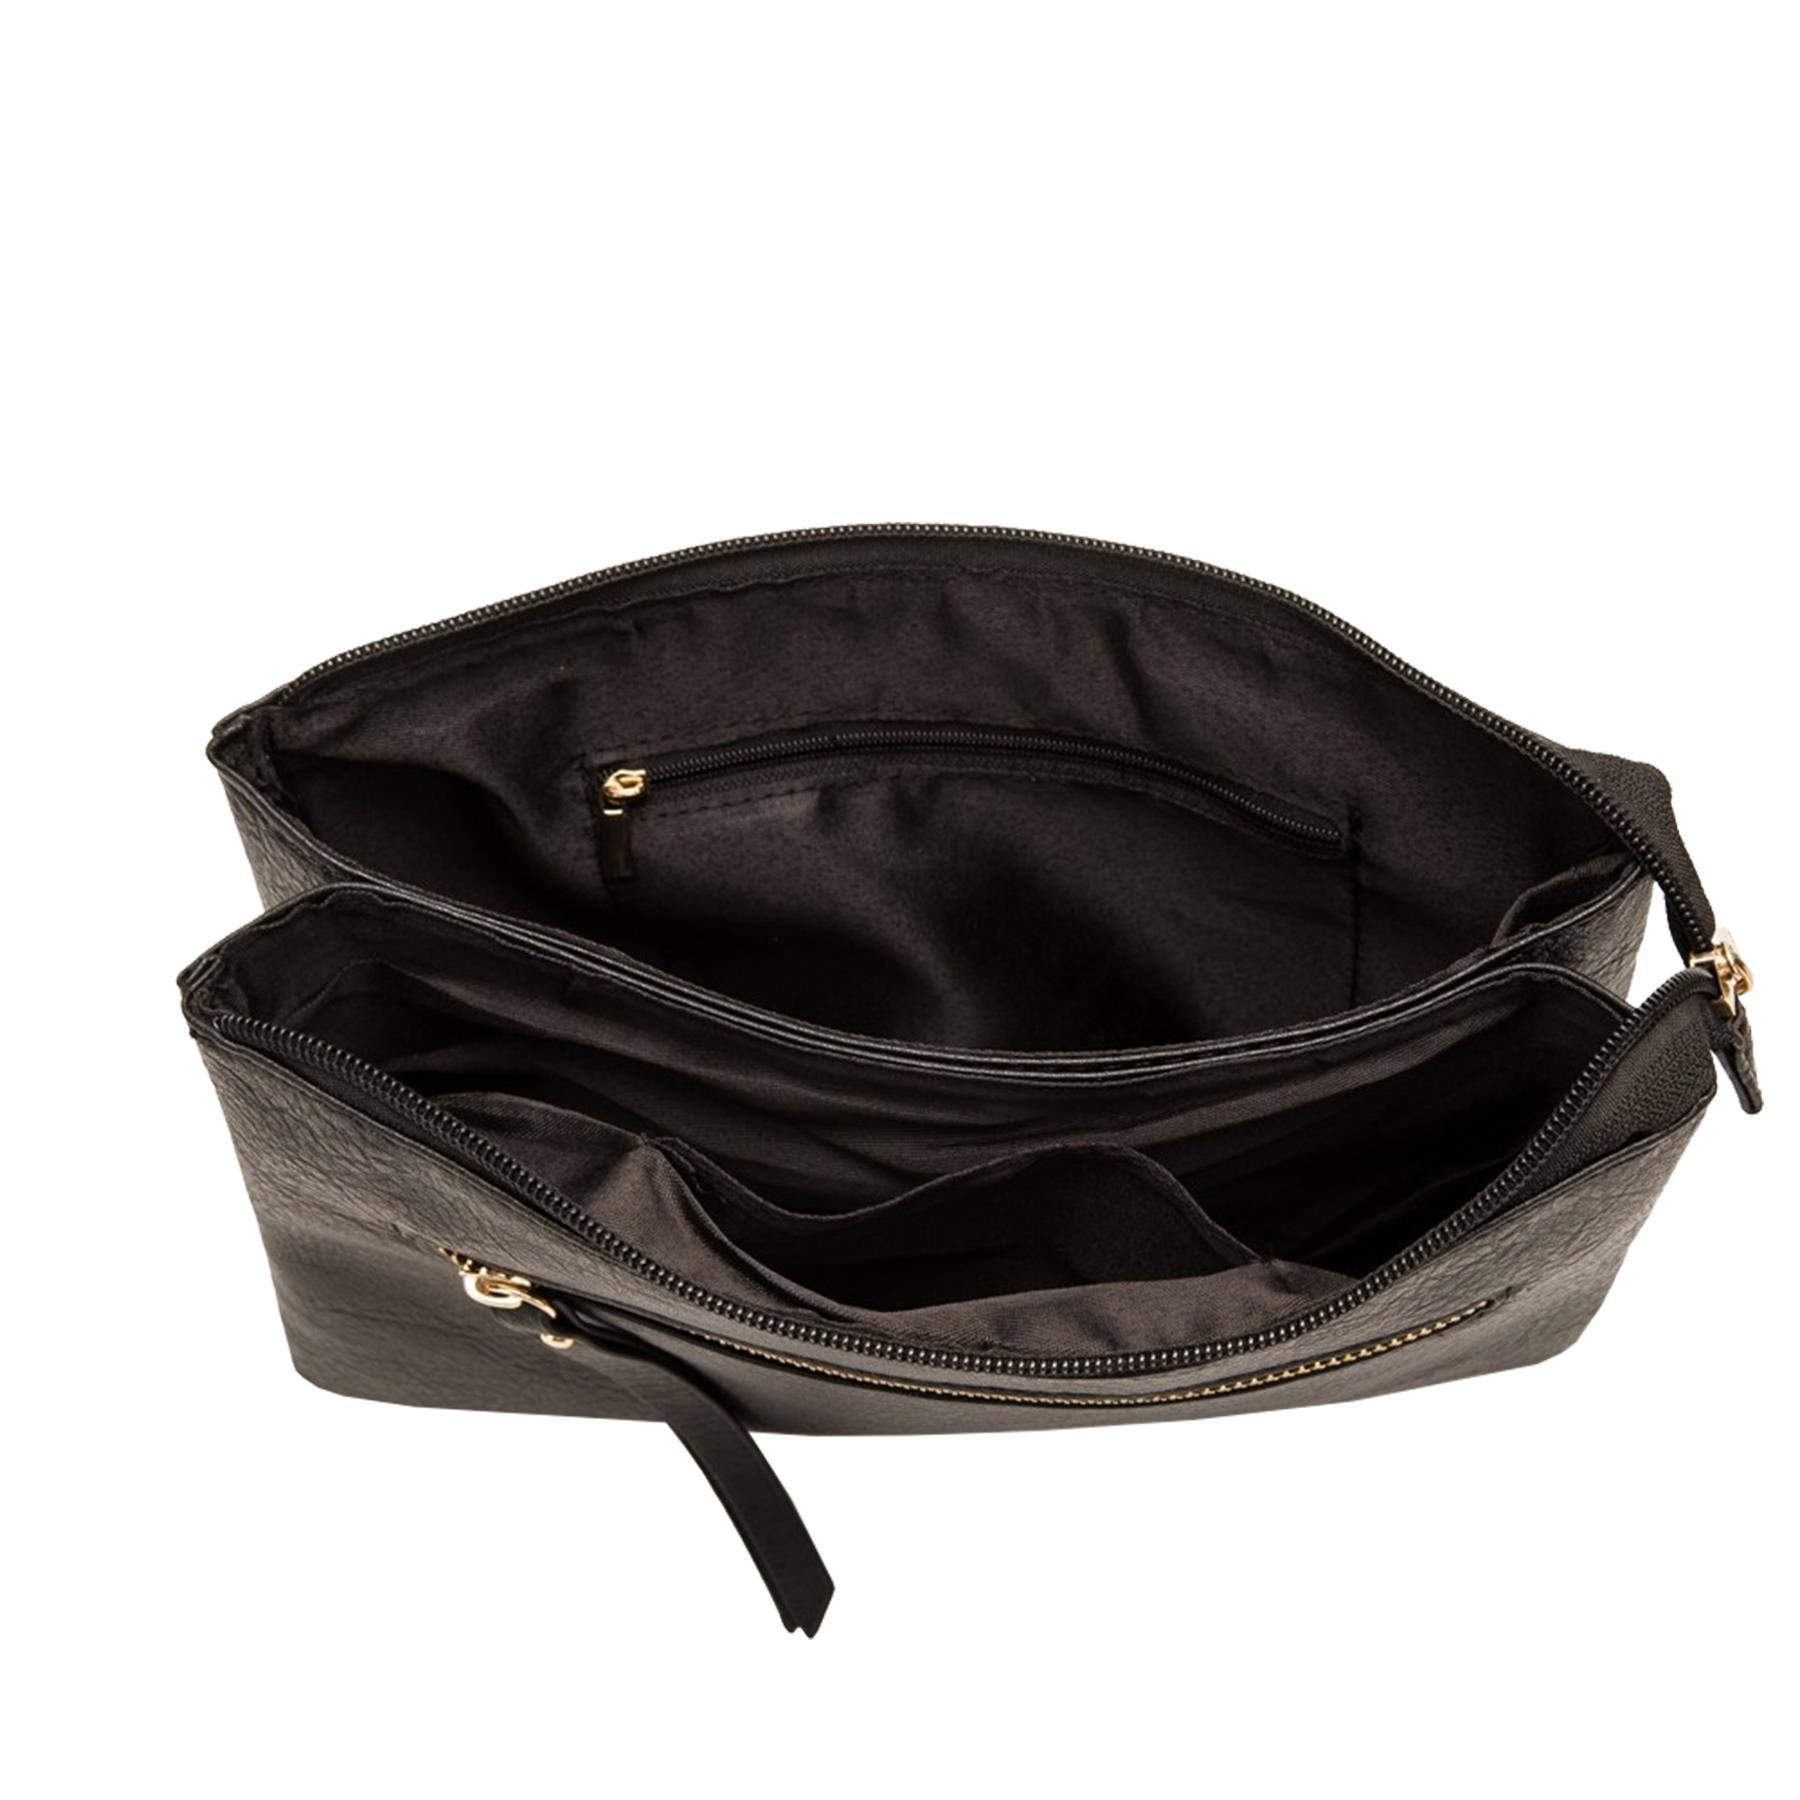 New-Plain-Synthetic-Leather-Women-s-Simple-Casual-Cross-Body-Bag thumbnail 4